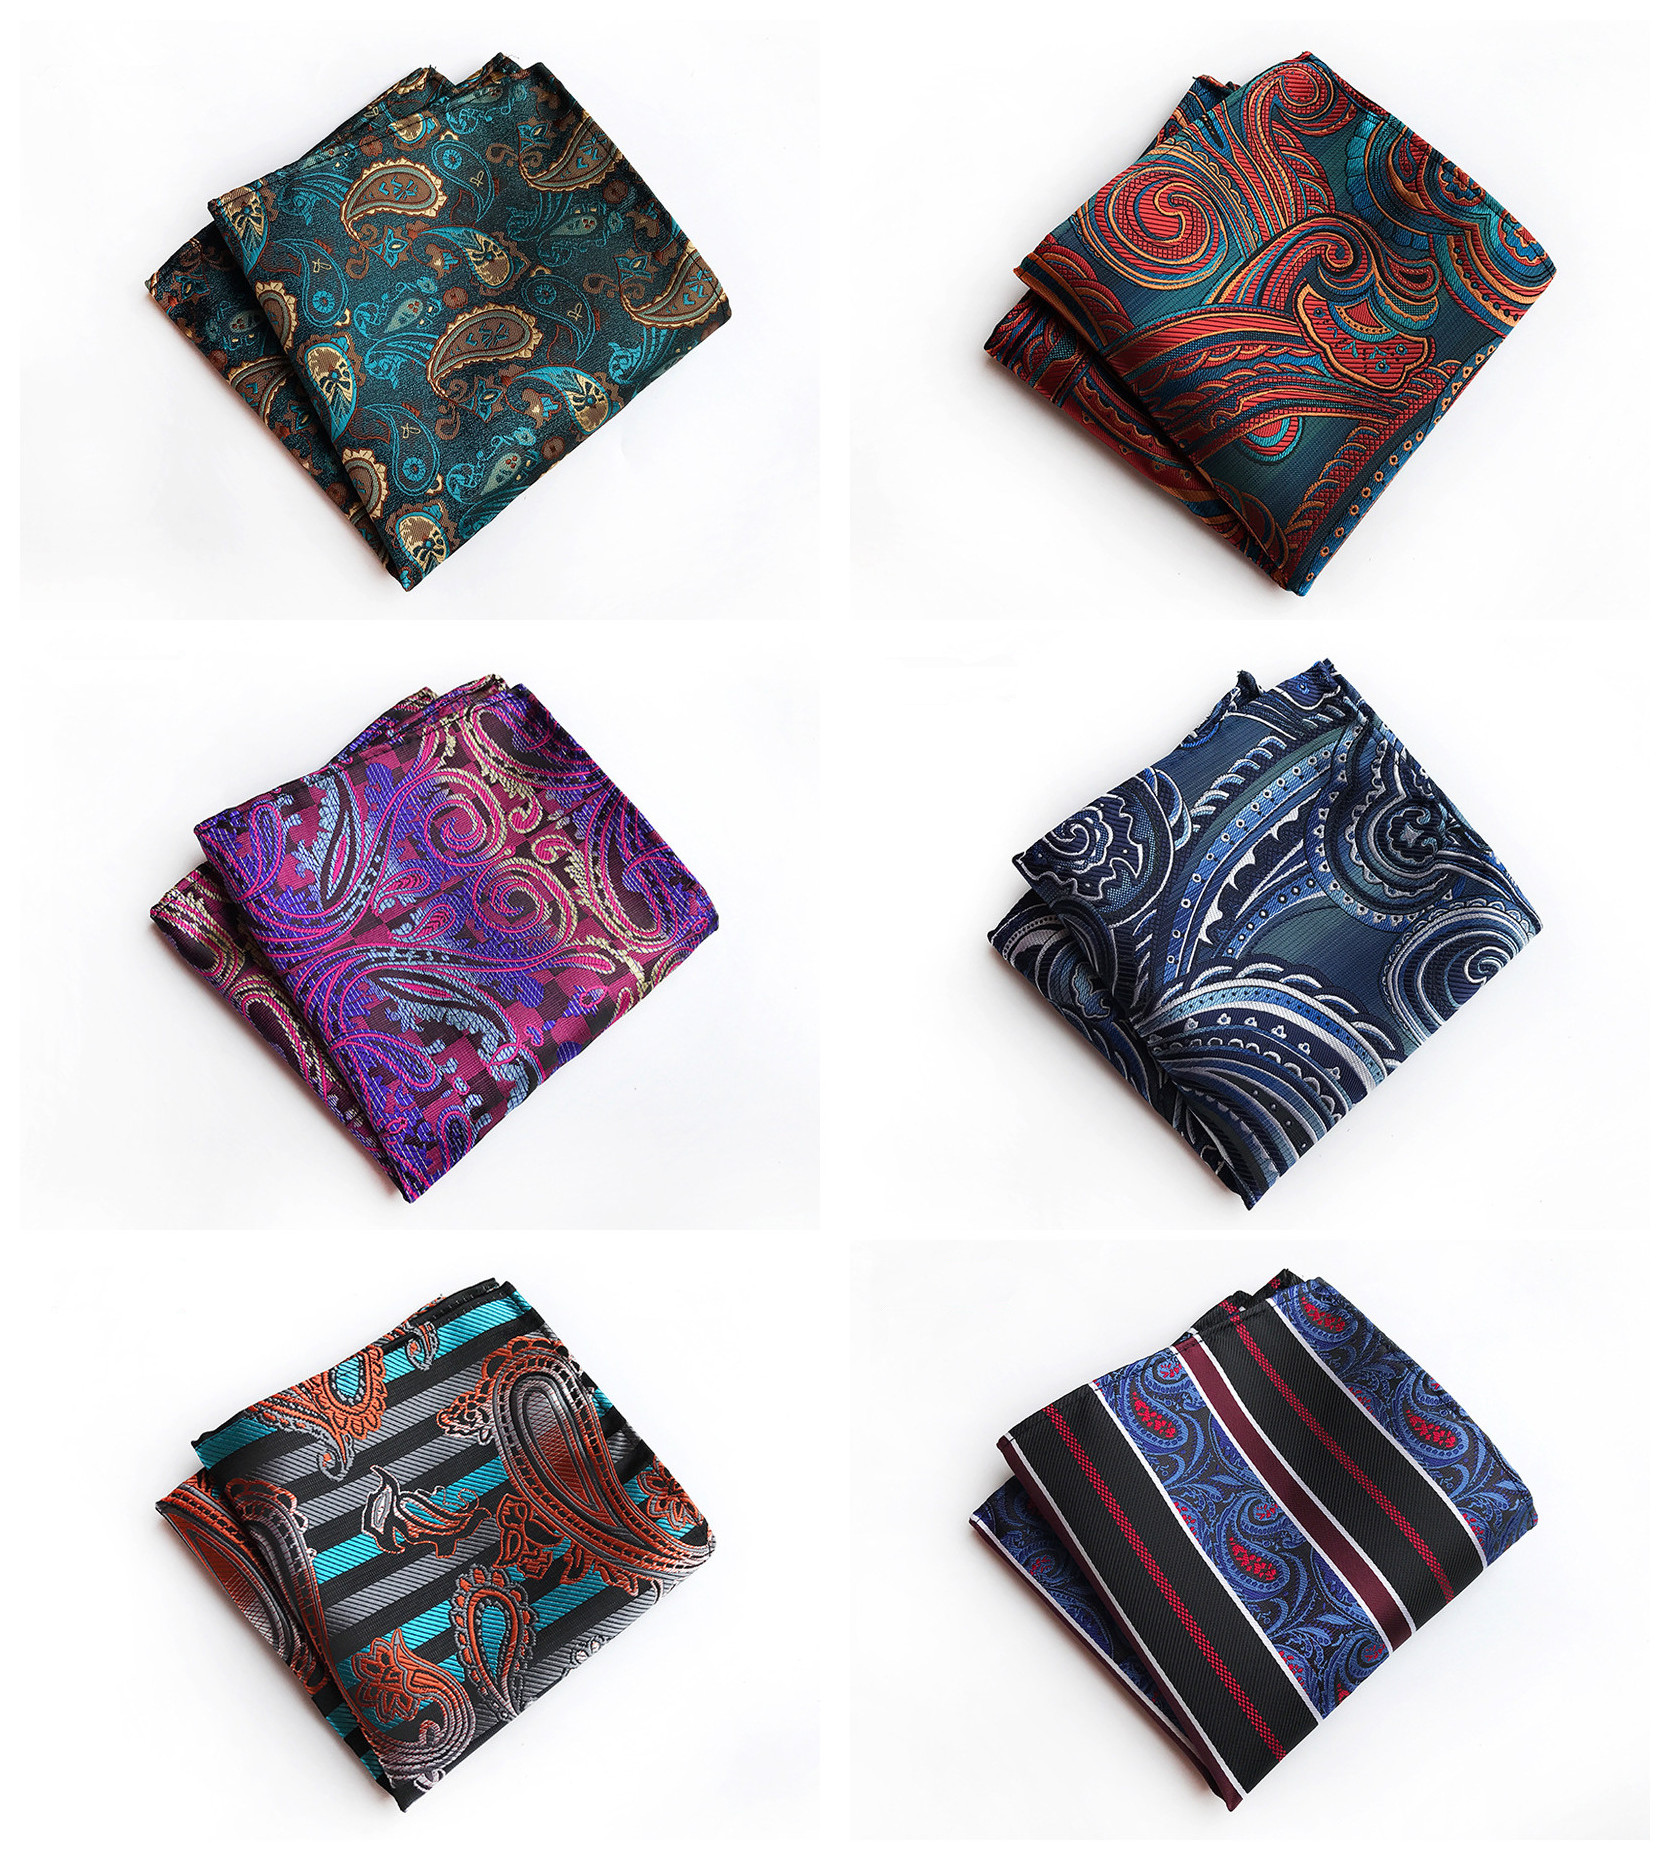 Fashion Quality Polyester Paisley Pocket Towel High-end Design Business Retro Men's Quality Decorative Handkerchief Pocket Towel